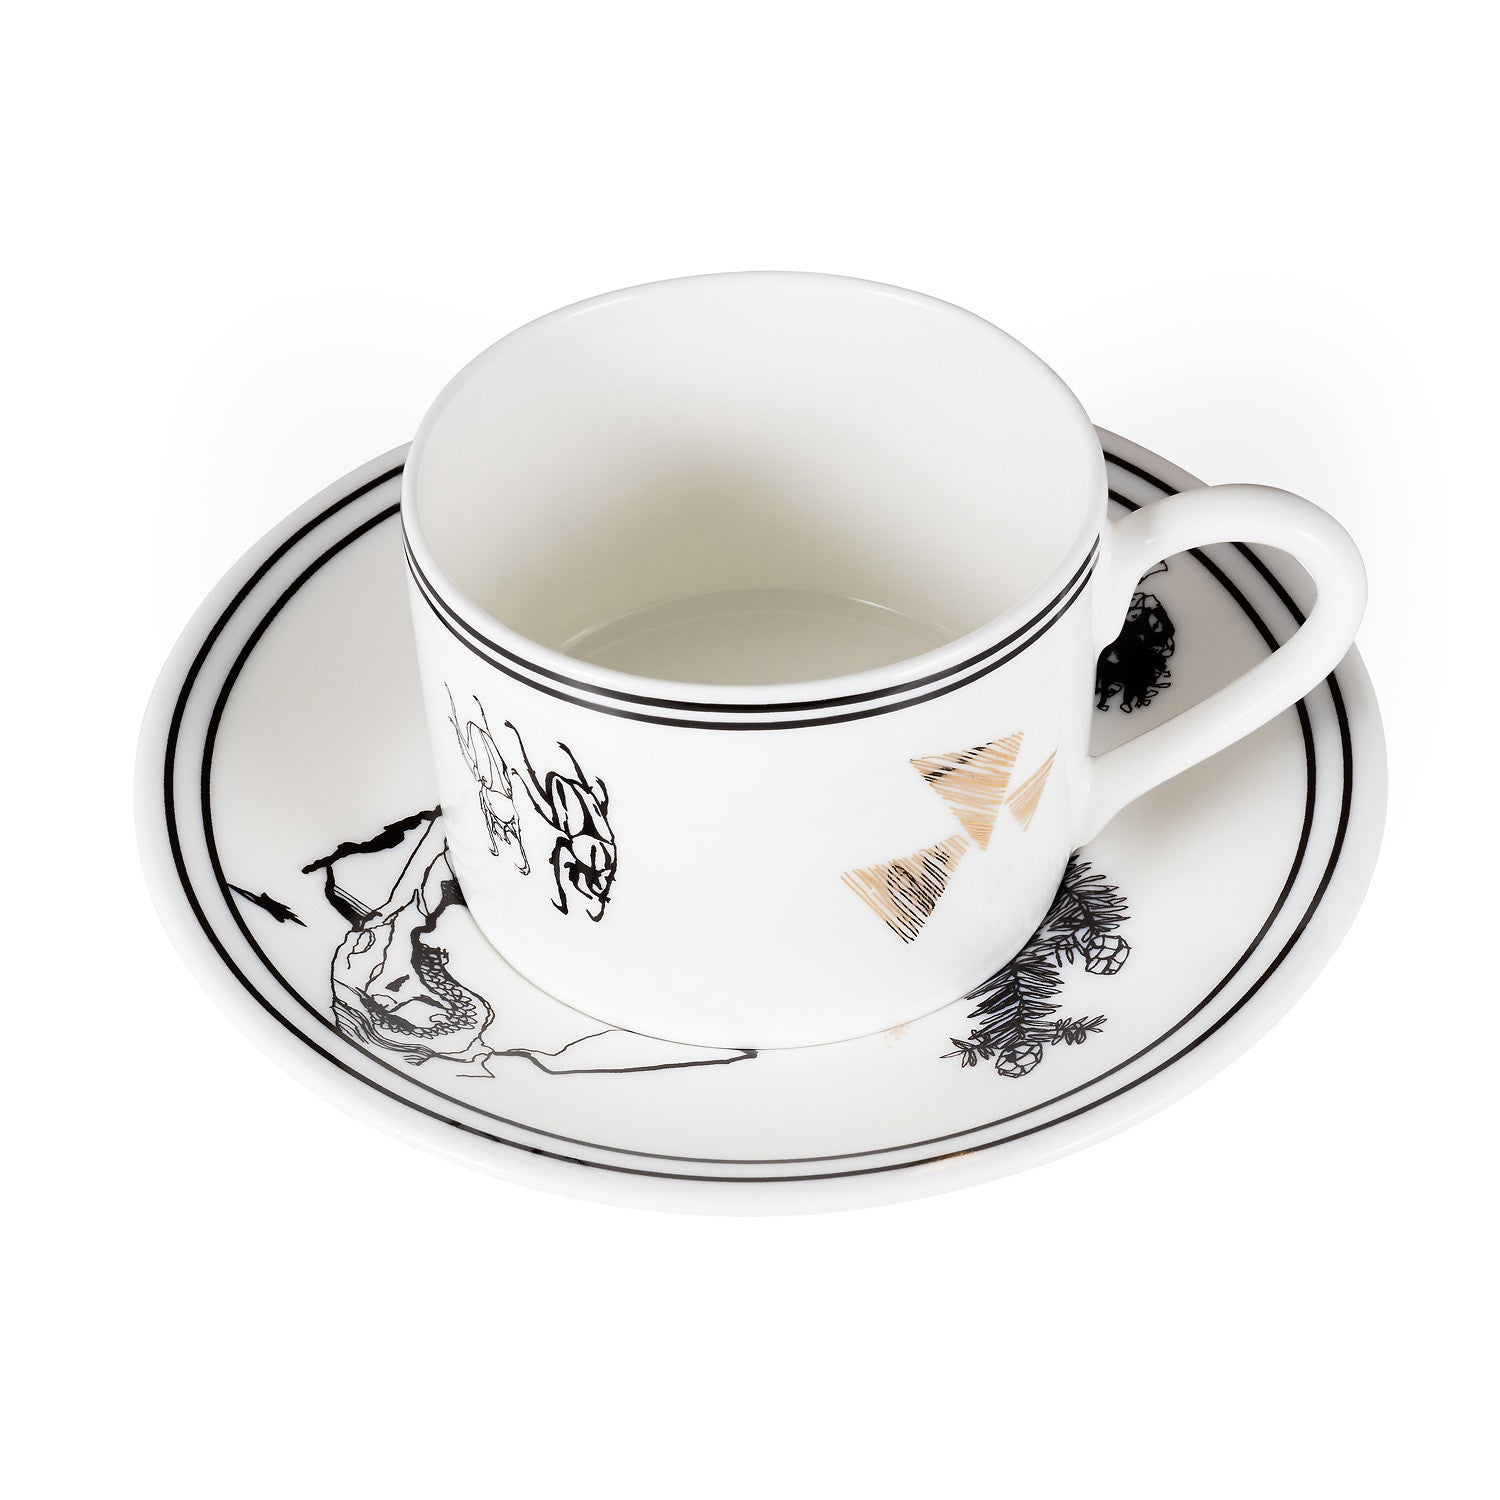 Fen Cup & Saucer - Harley Boden